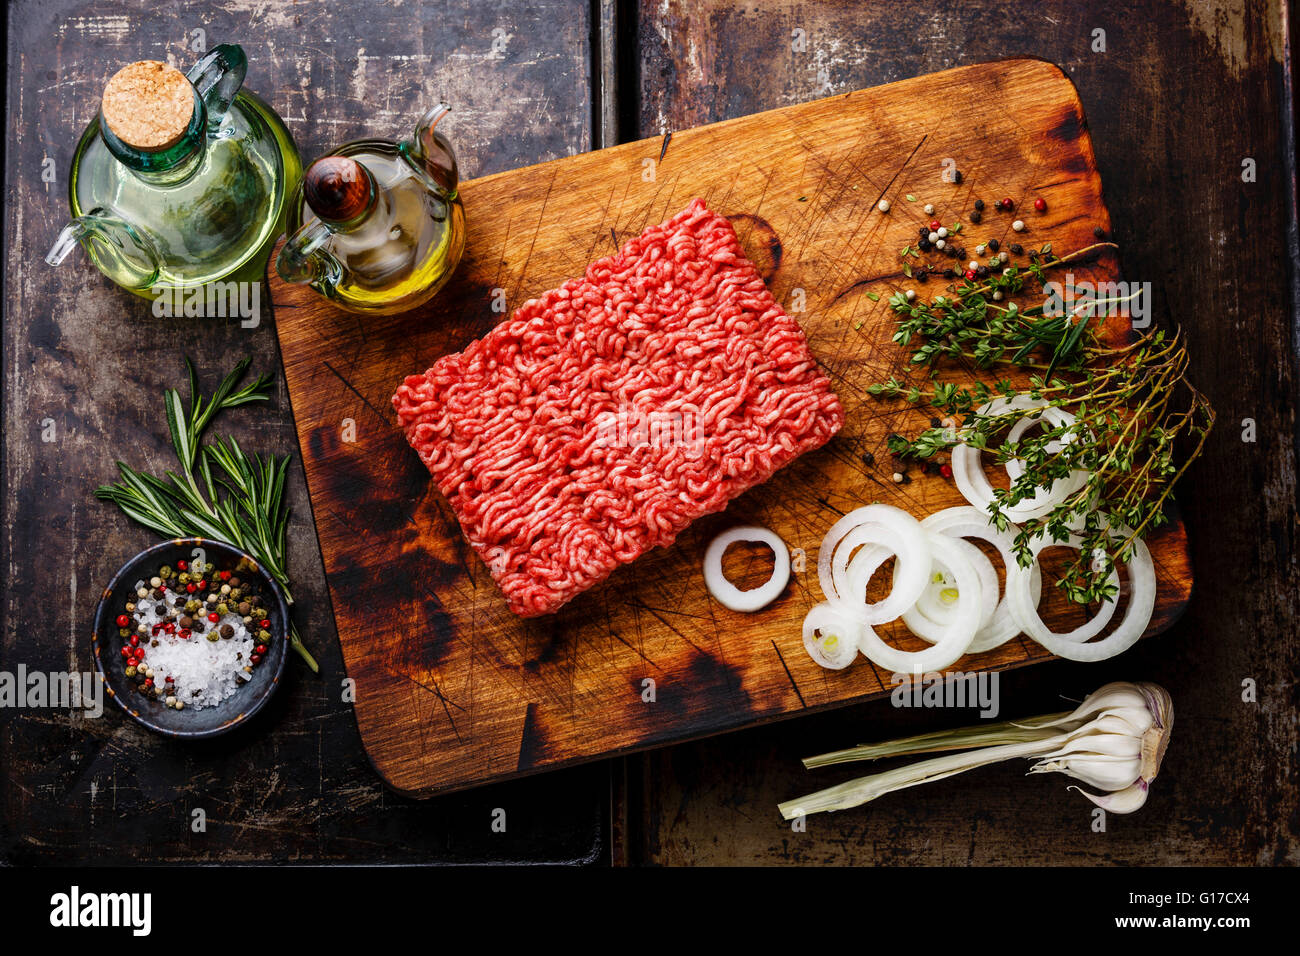 Raw fresh Minced ground meat and condiments on dark background - Stock Image